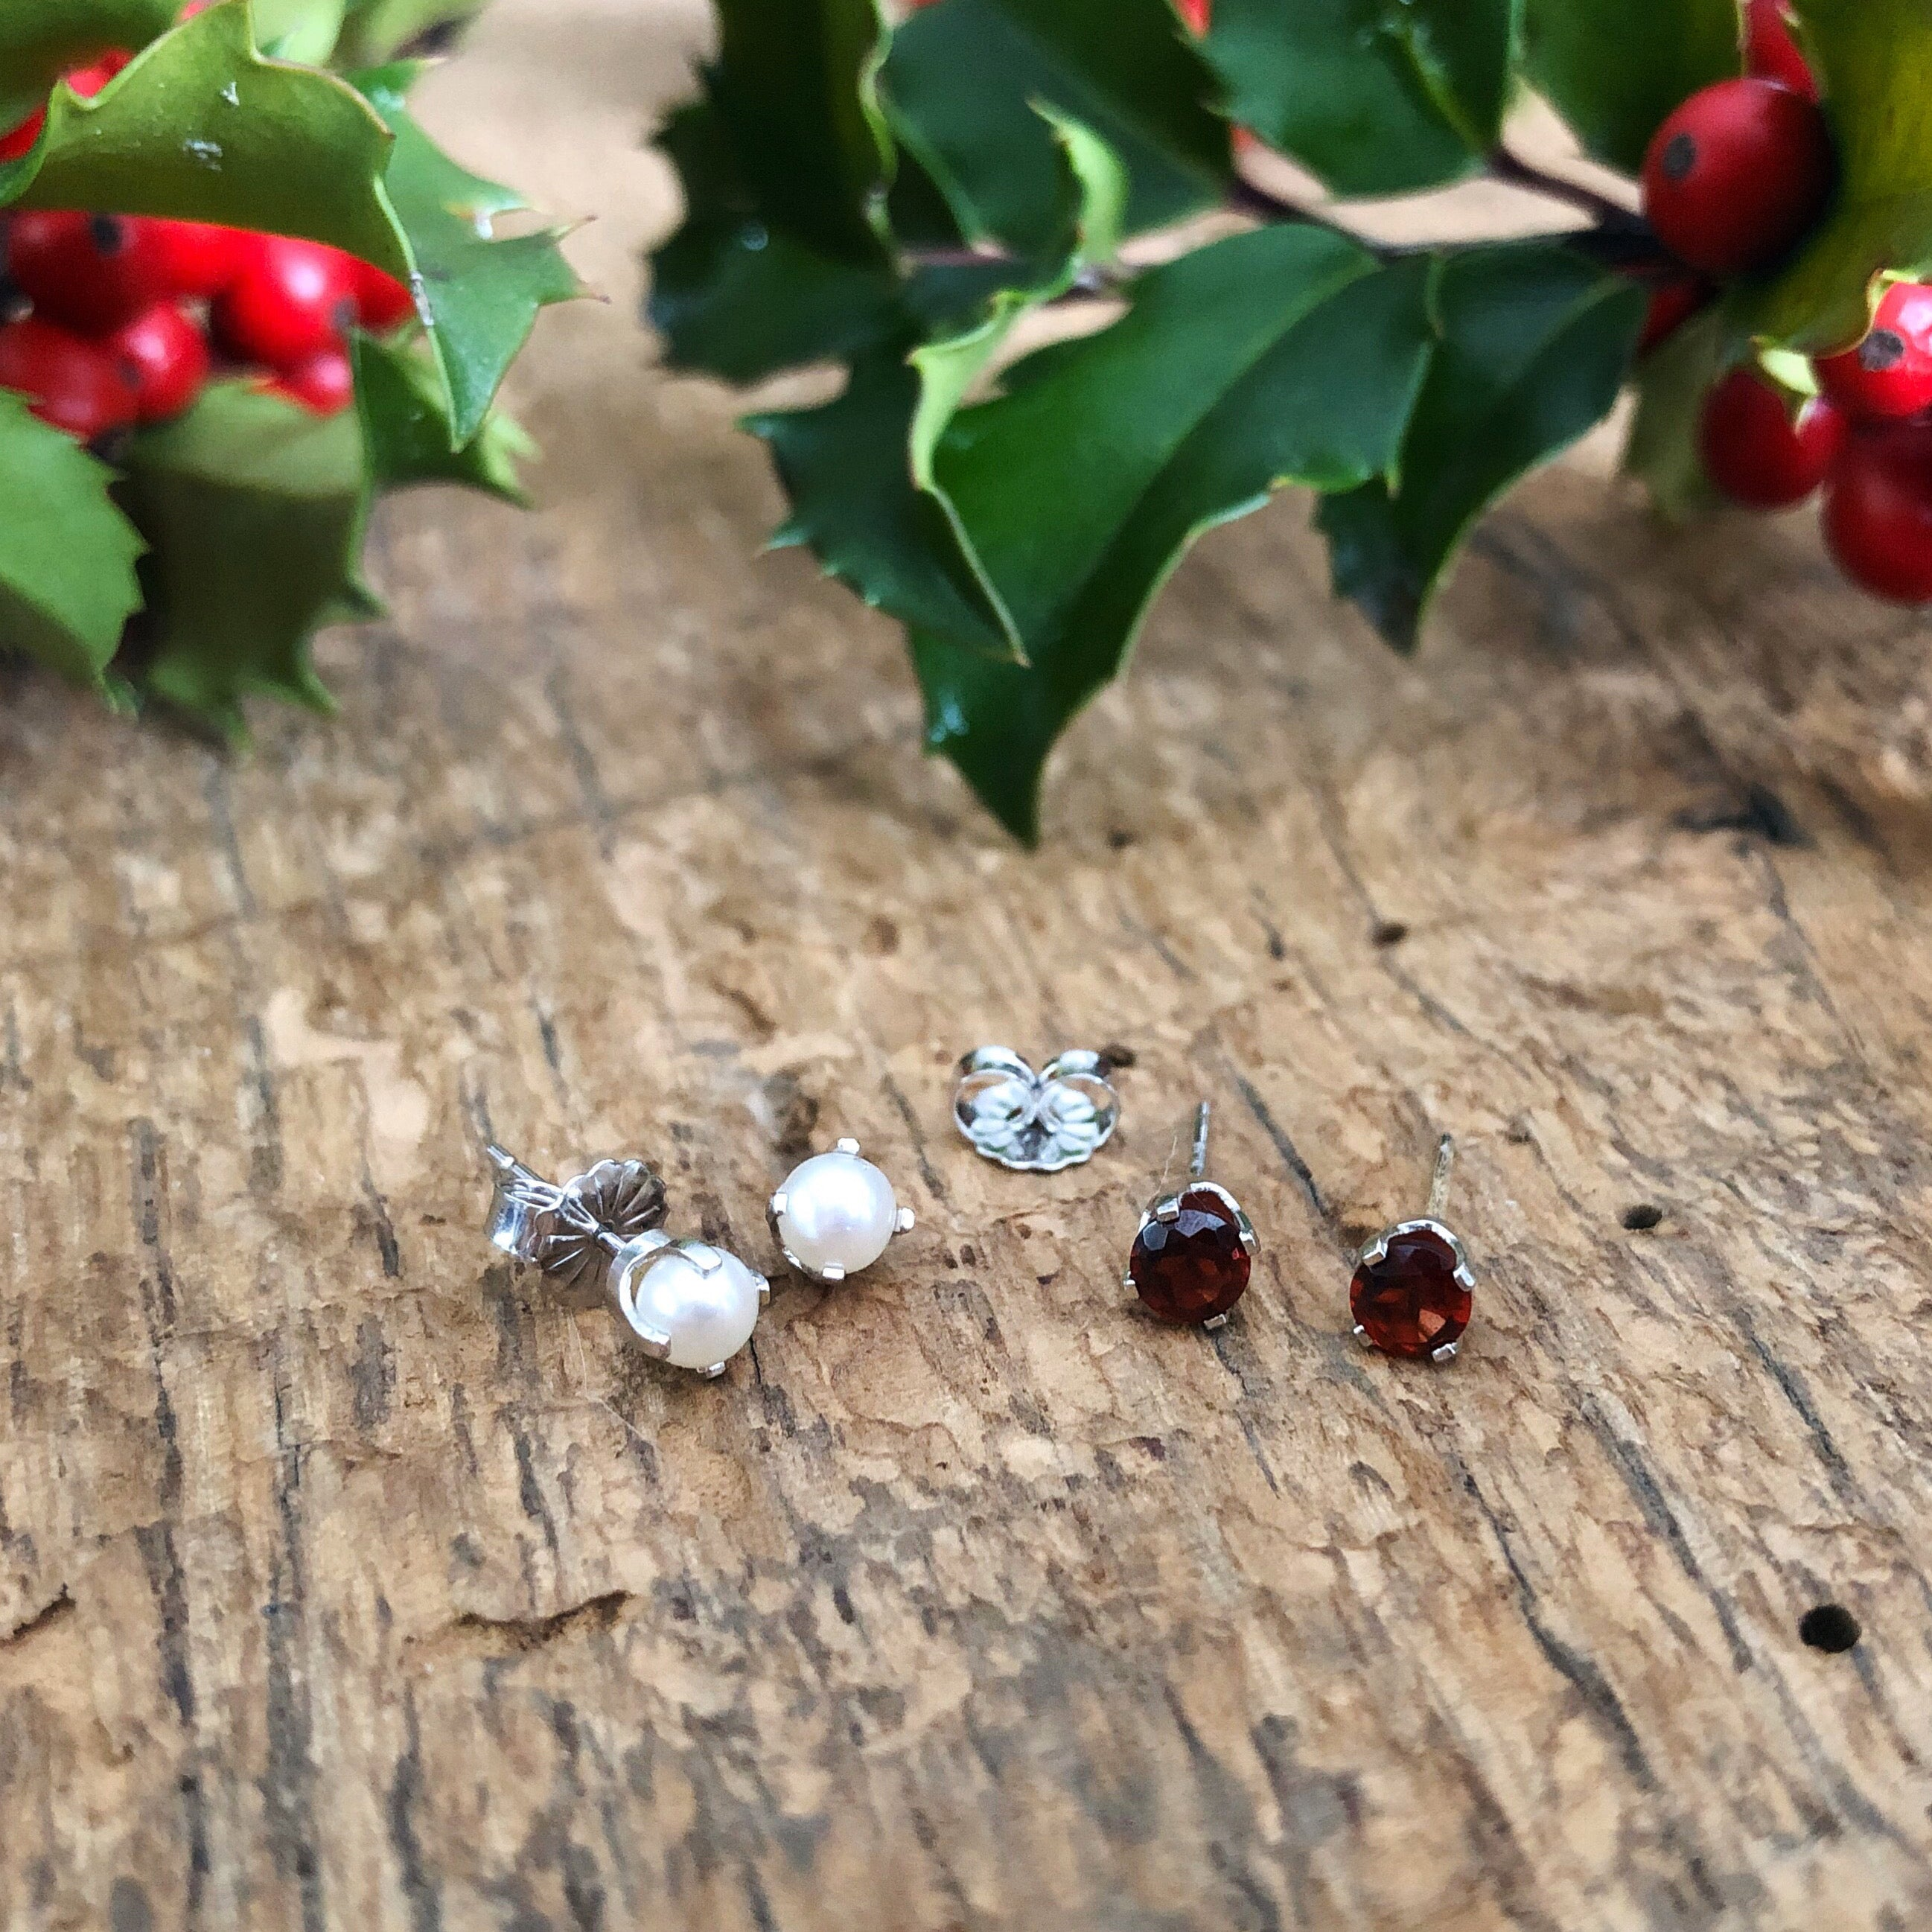 Genuine Birthstone Stud Earrings in White or Yellow Gold